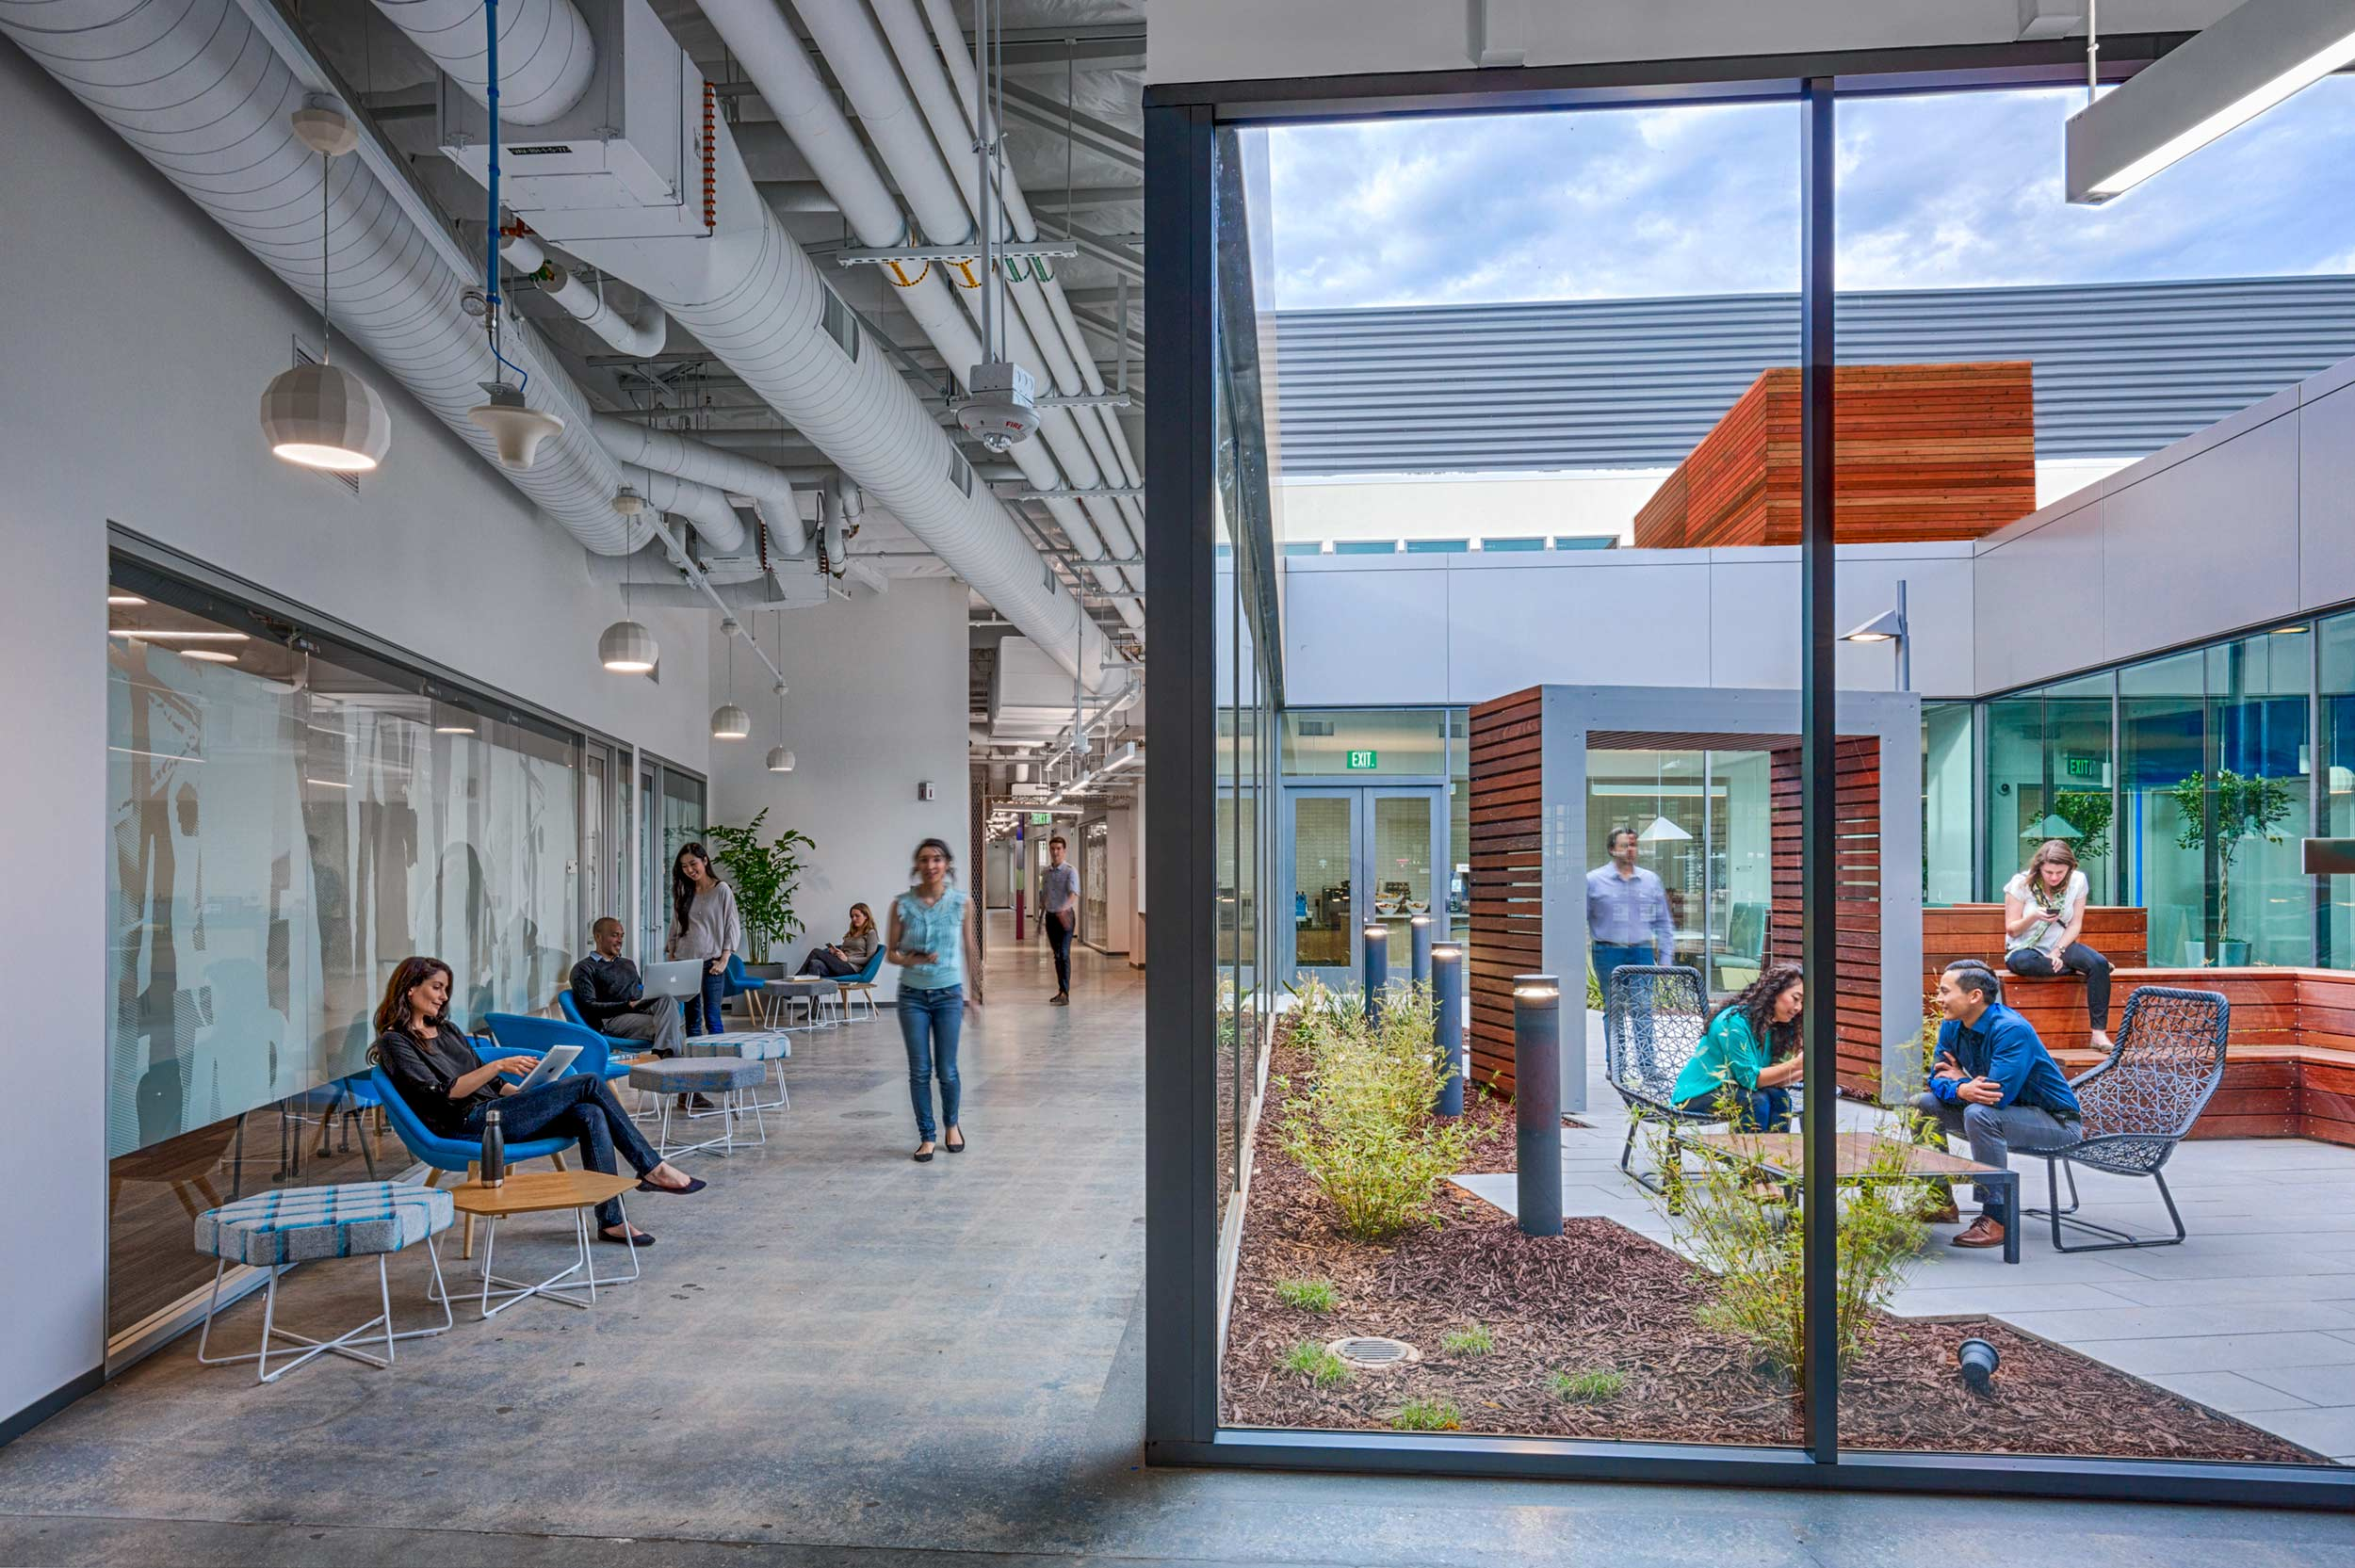 Courtyard, Java Corners, Sunnyvale, CA (Photo by Marco Zecchin)